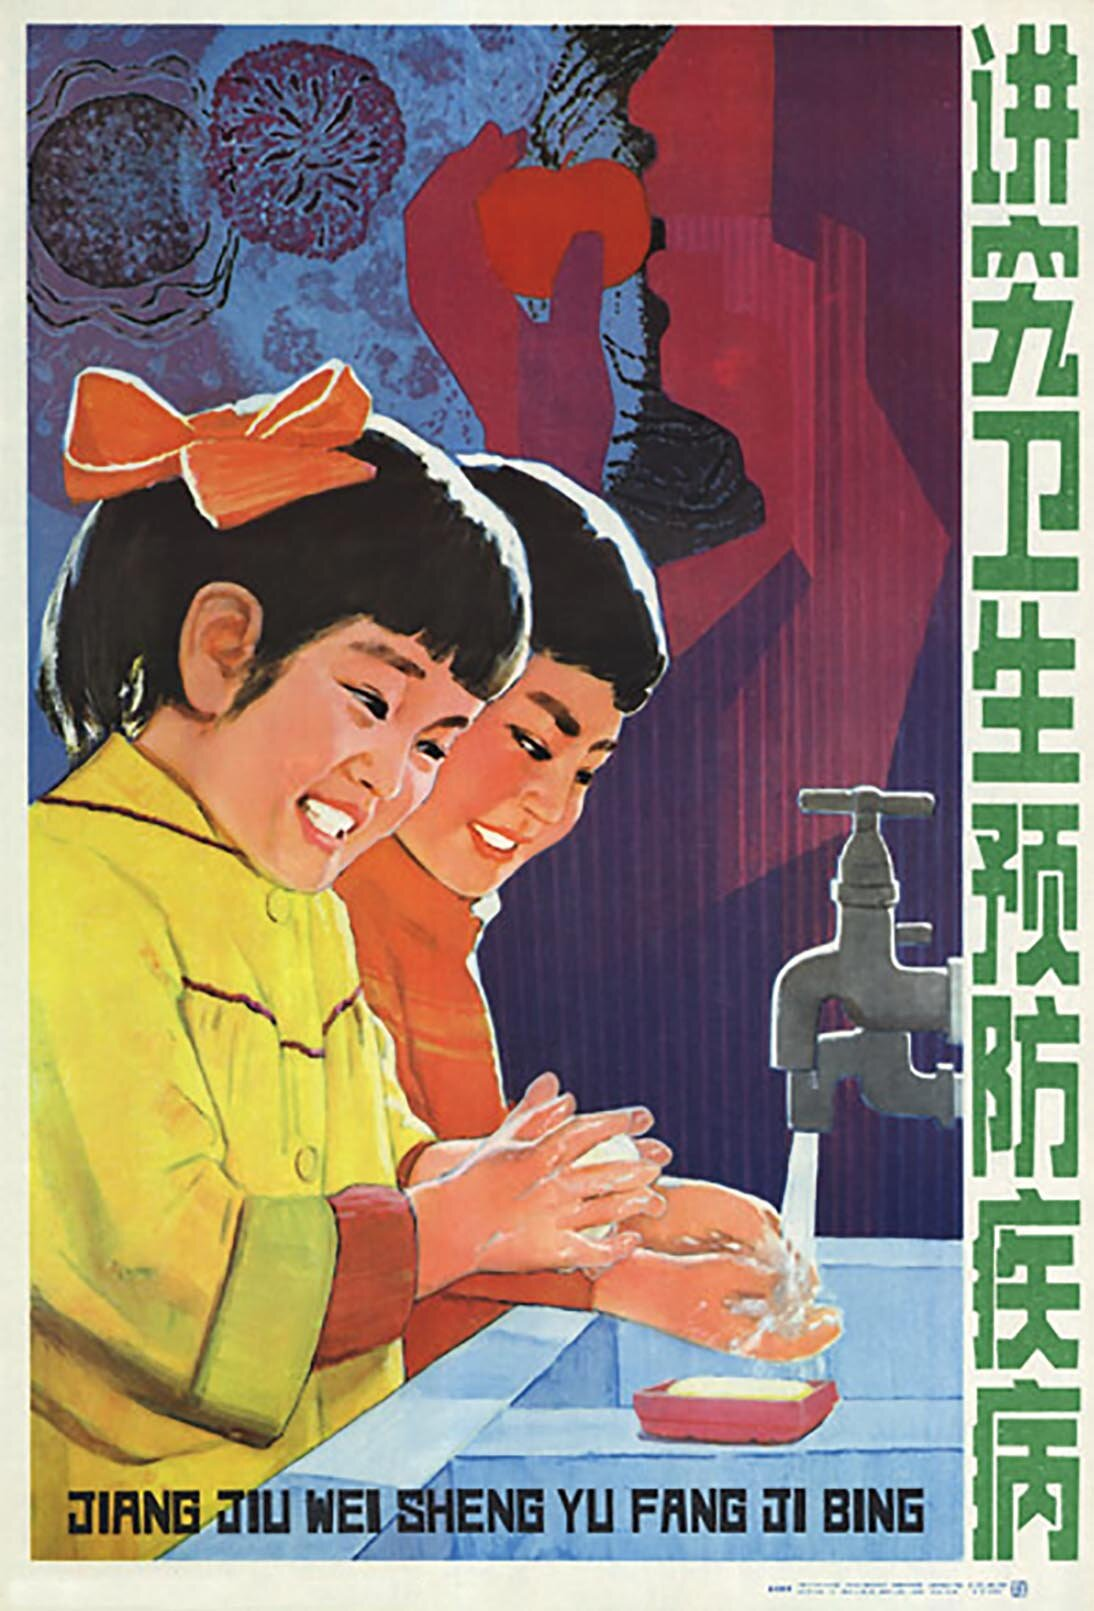 講究衛生預防疾病/Practice hygiene to protect against disease, 1983